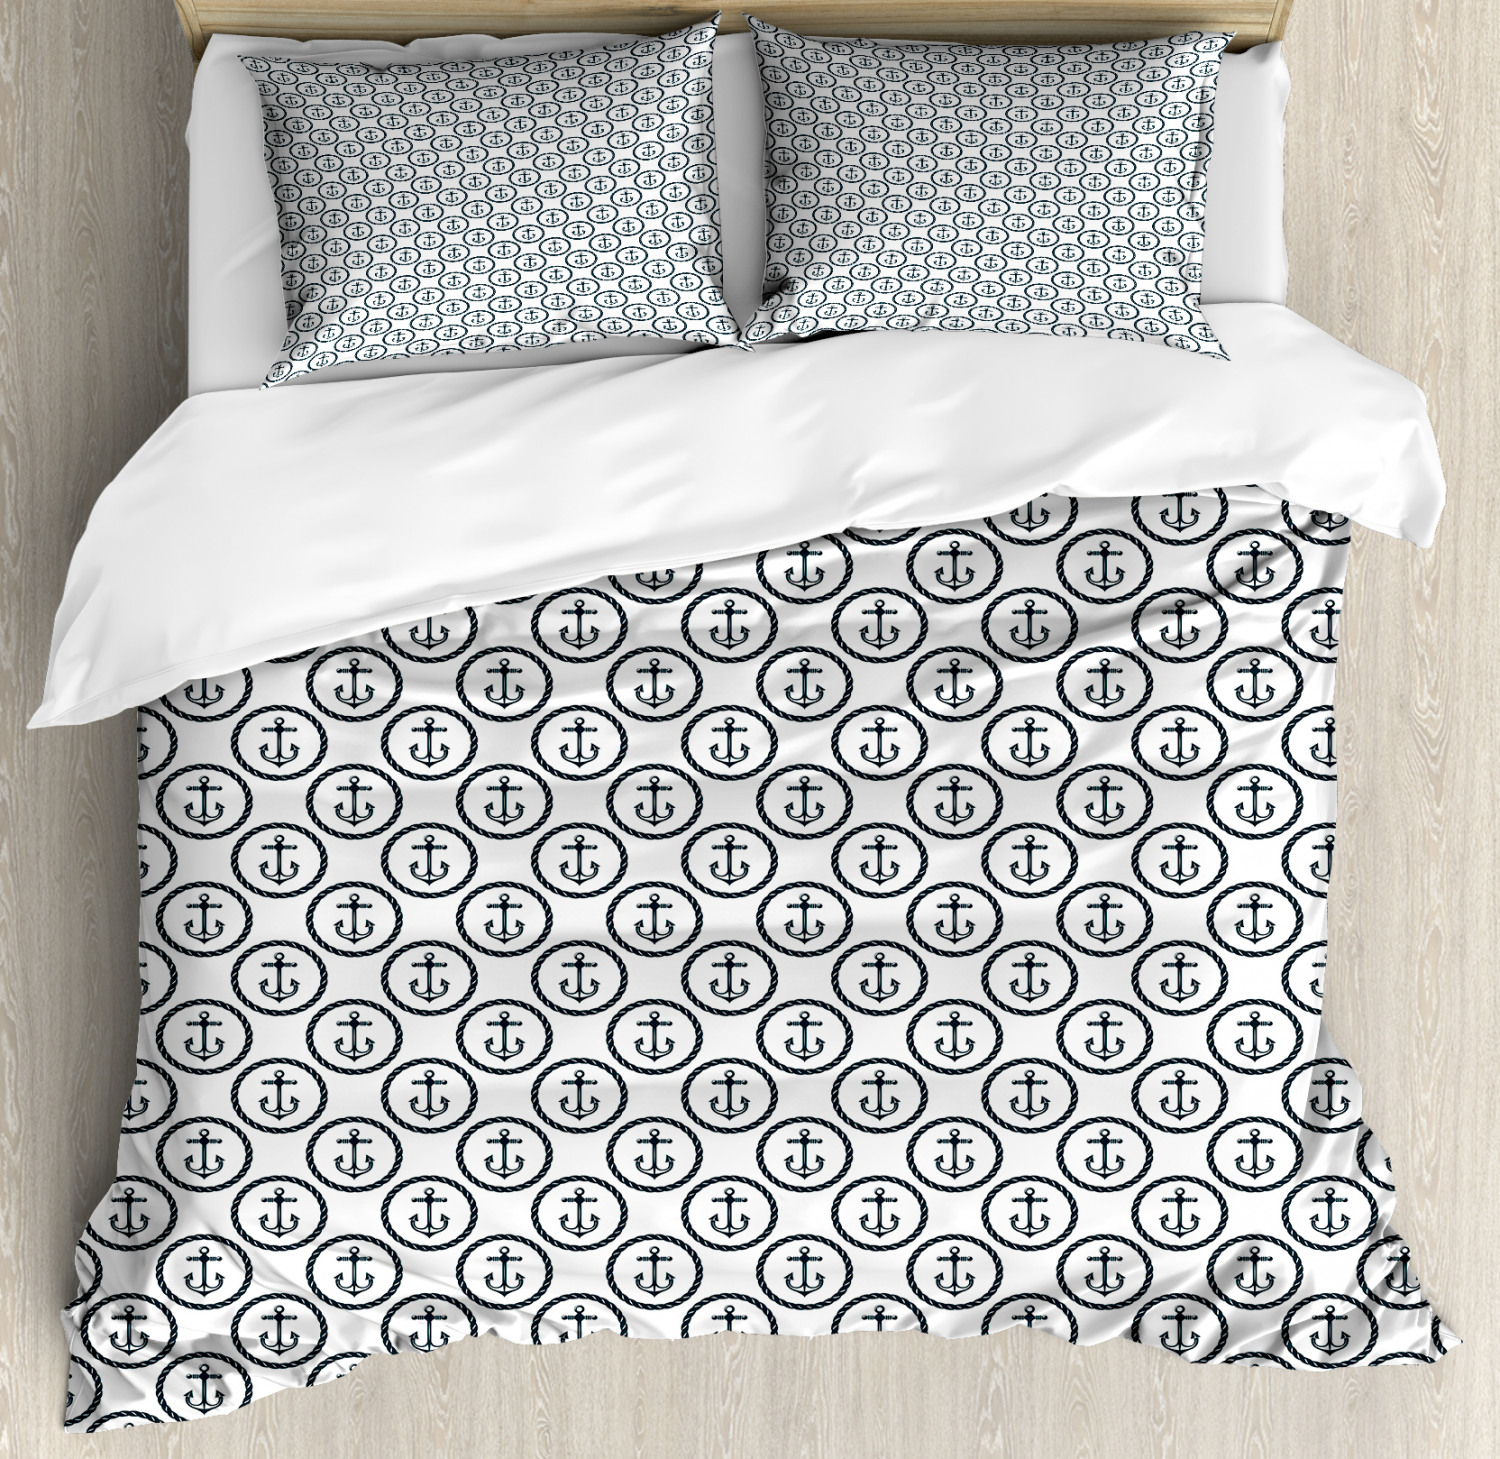 Anchor Duvet Cover Set with Pillow Shams Circular Rope Frame